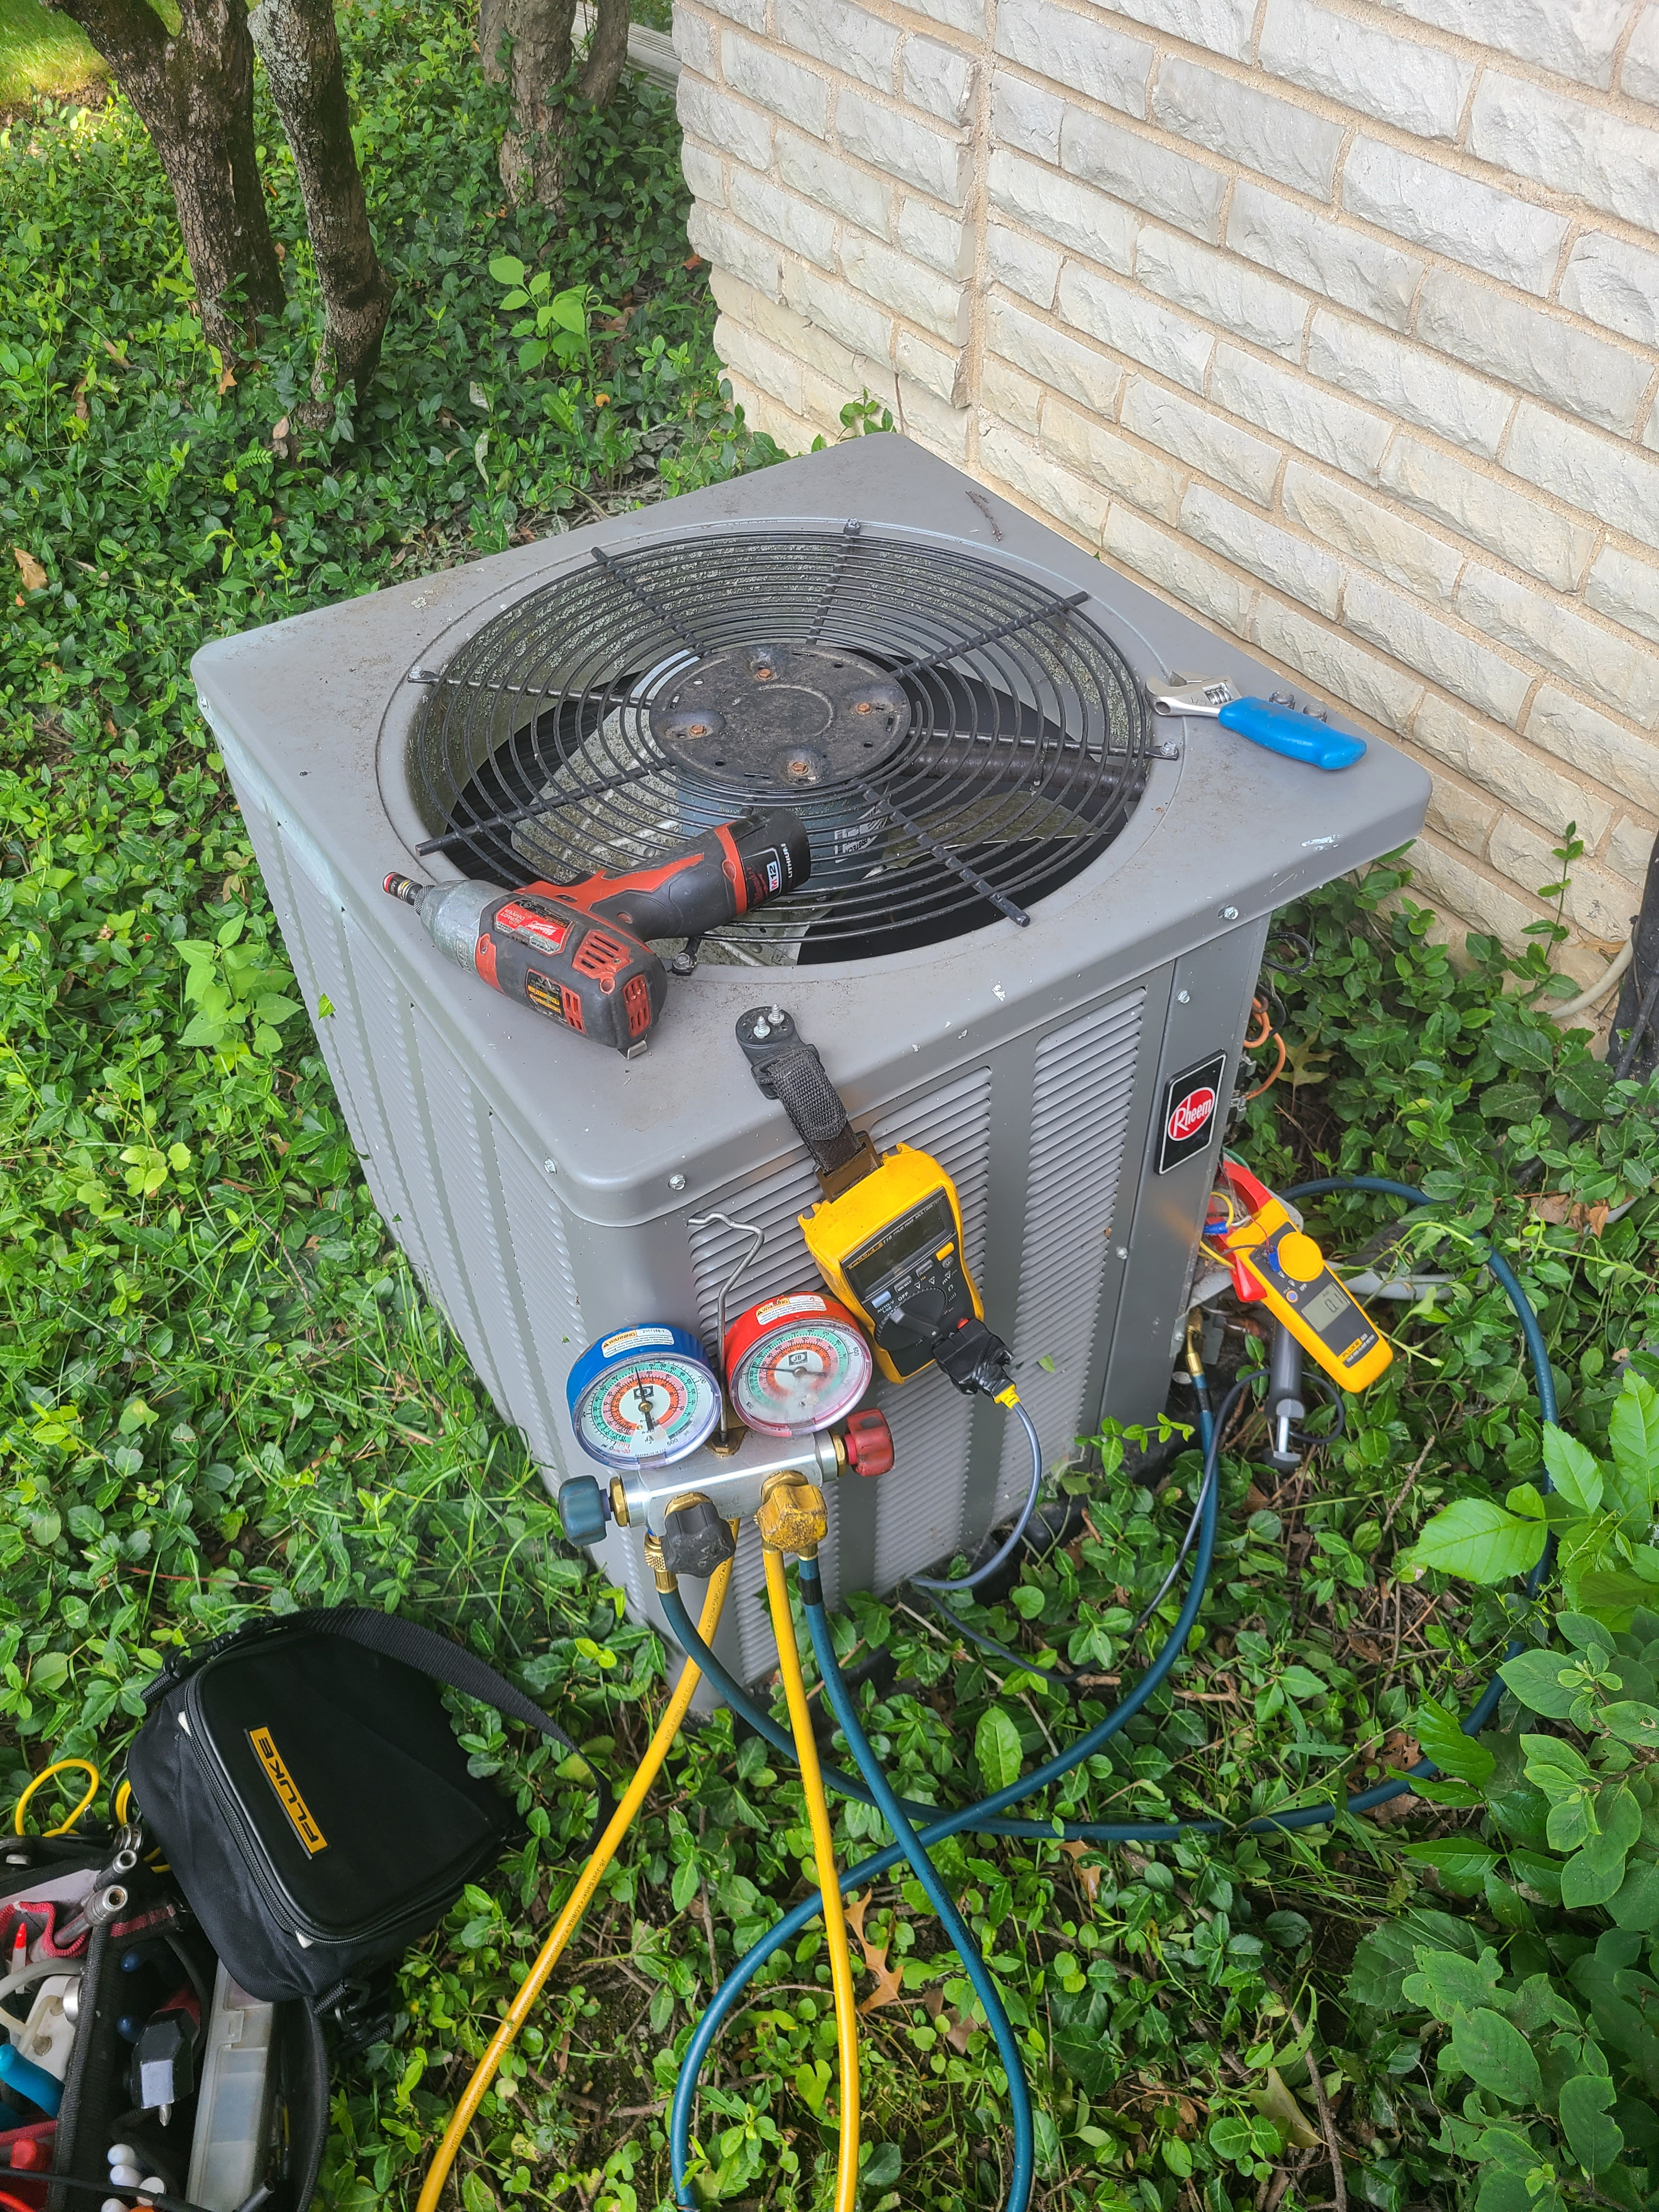 Rheem ac sumer maintenance. System cleaned and checked and ready for summer.